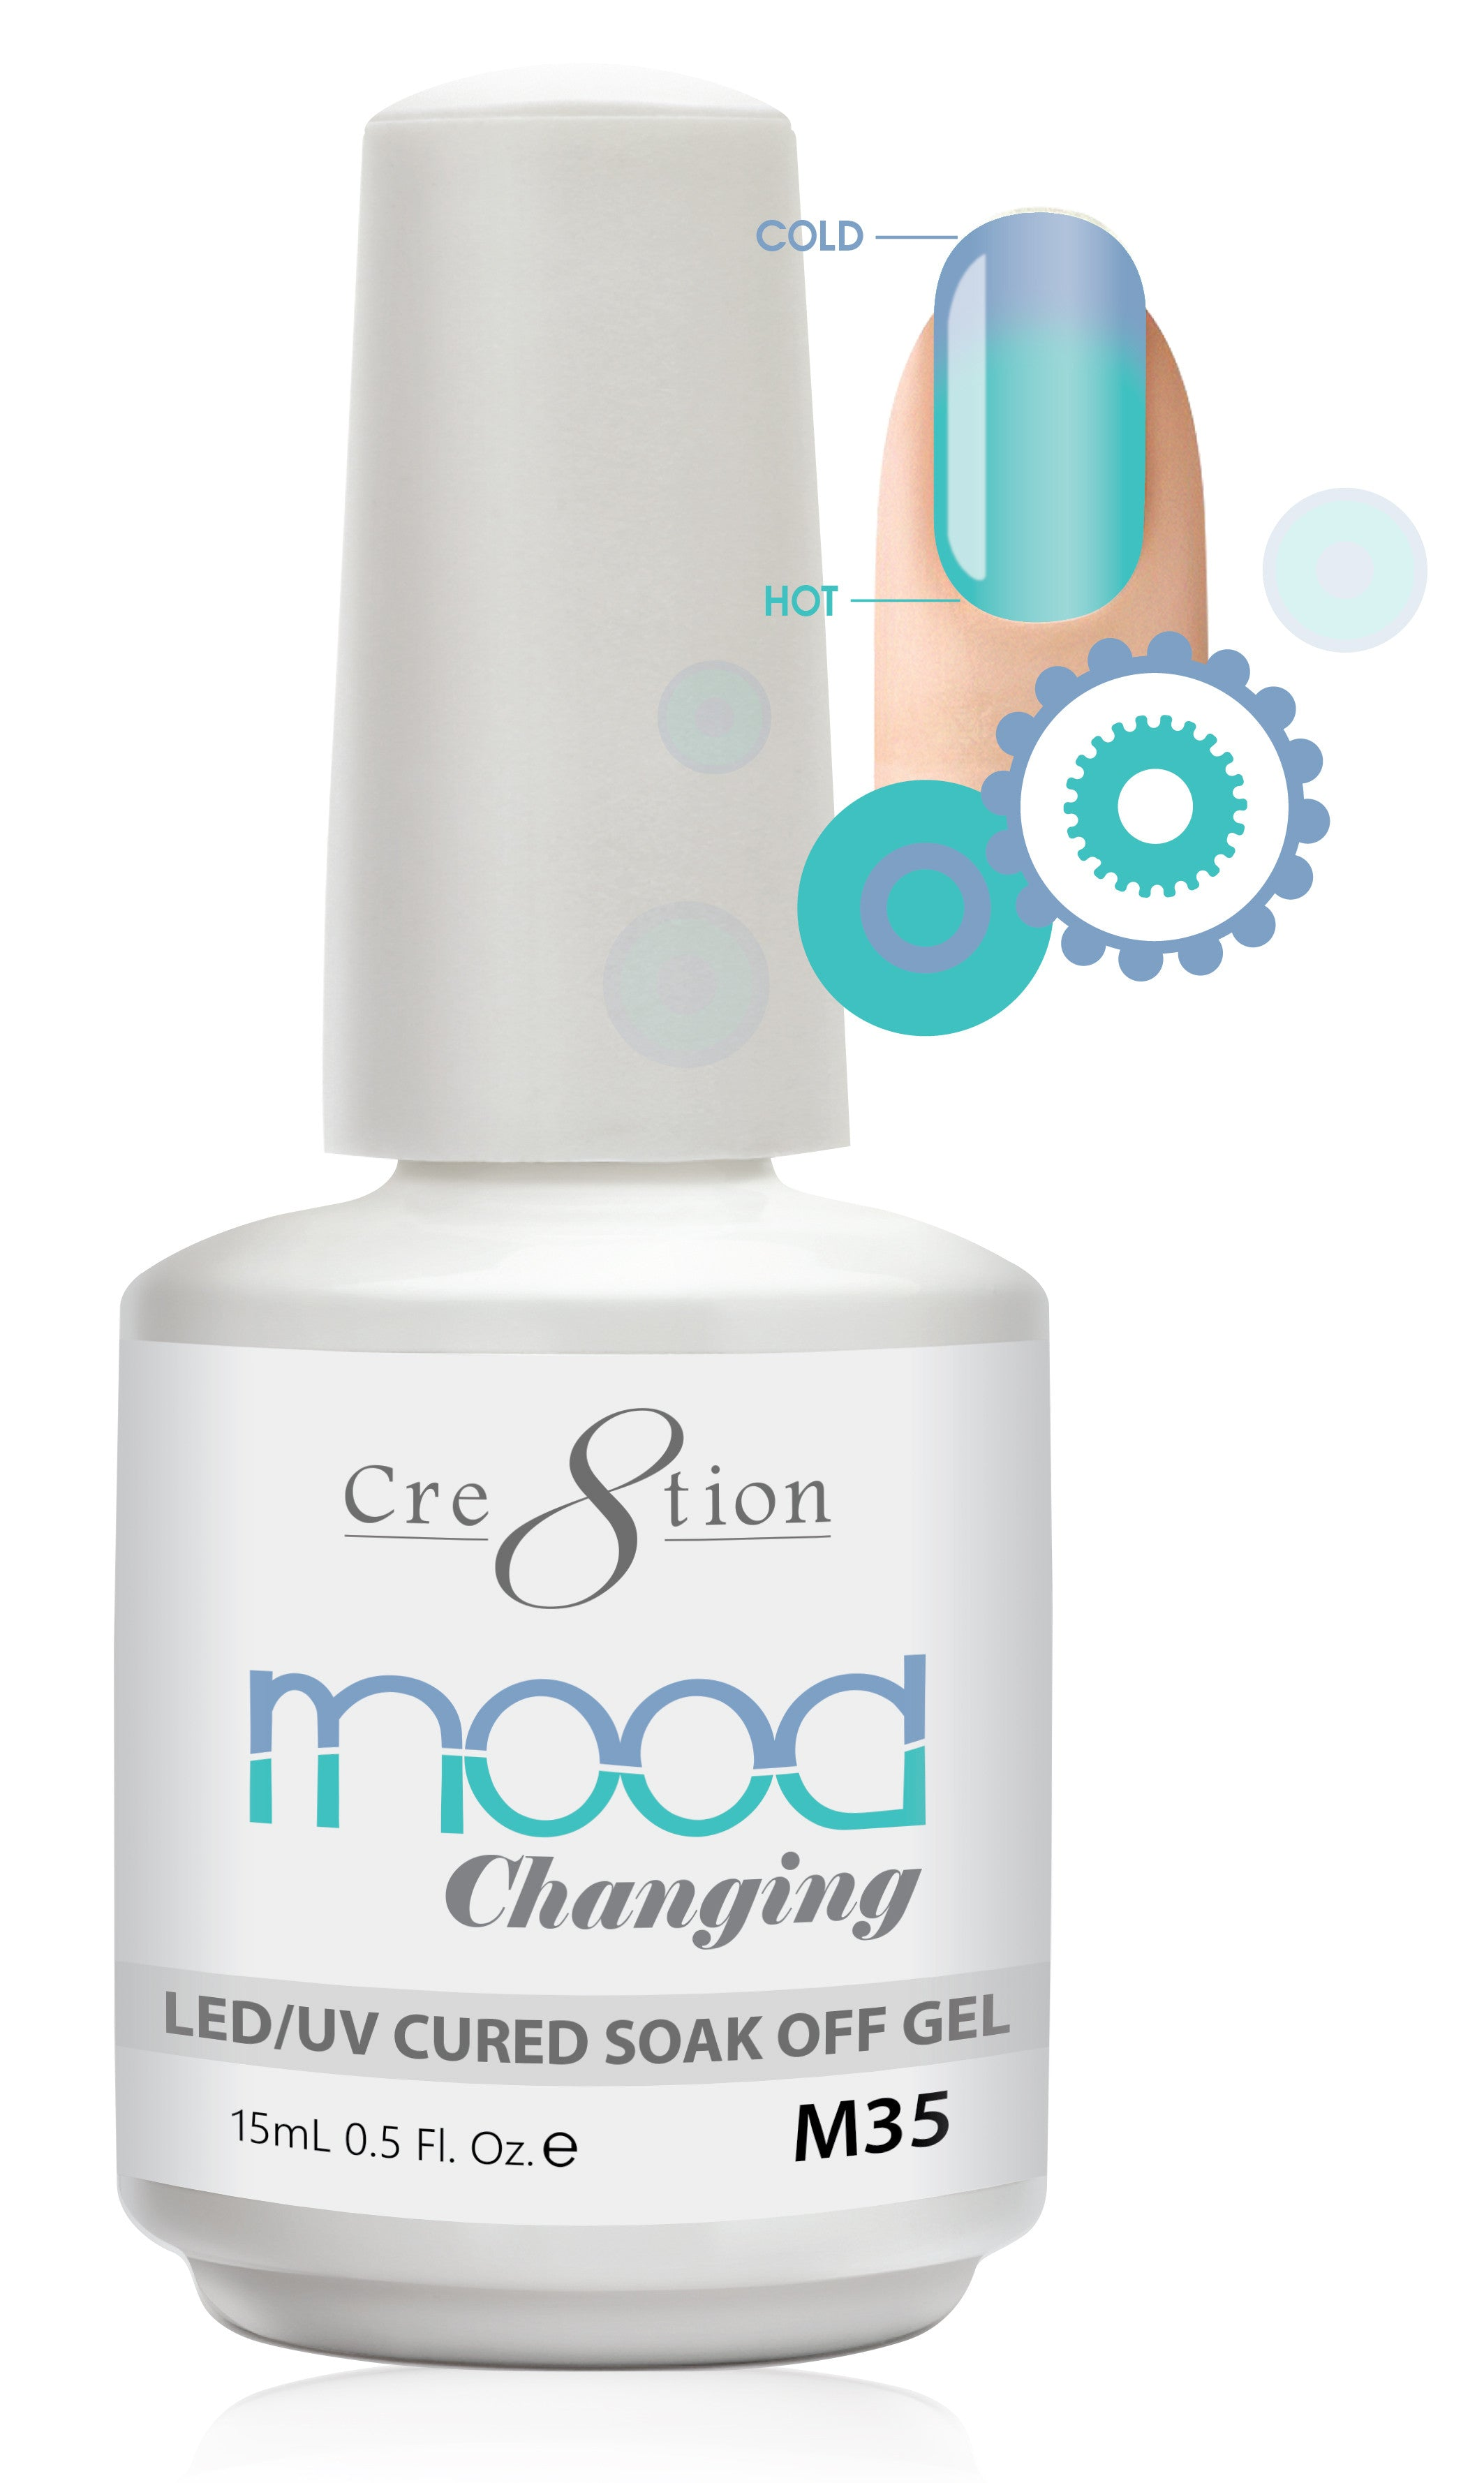 Cre8tion Mood Changing Soak Off Gel M35-Creamy